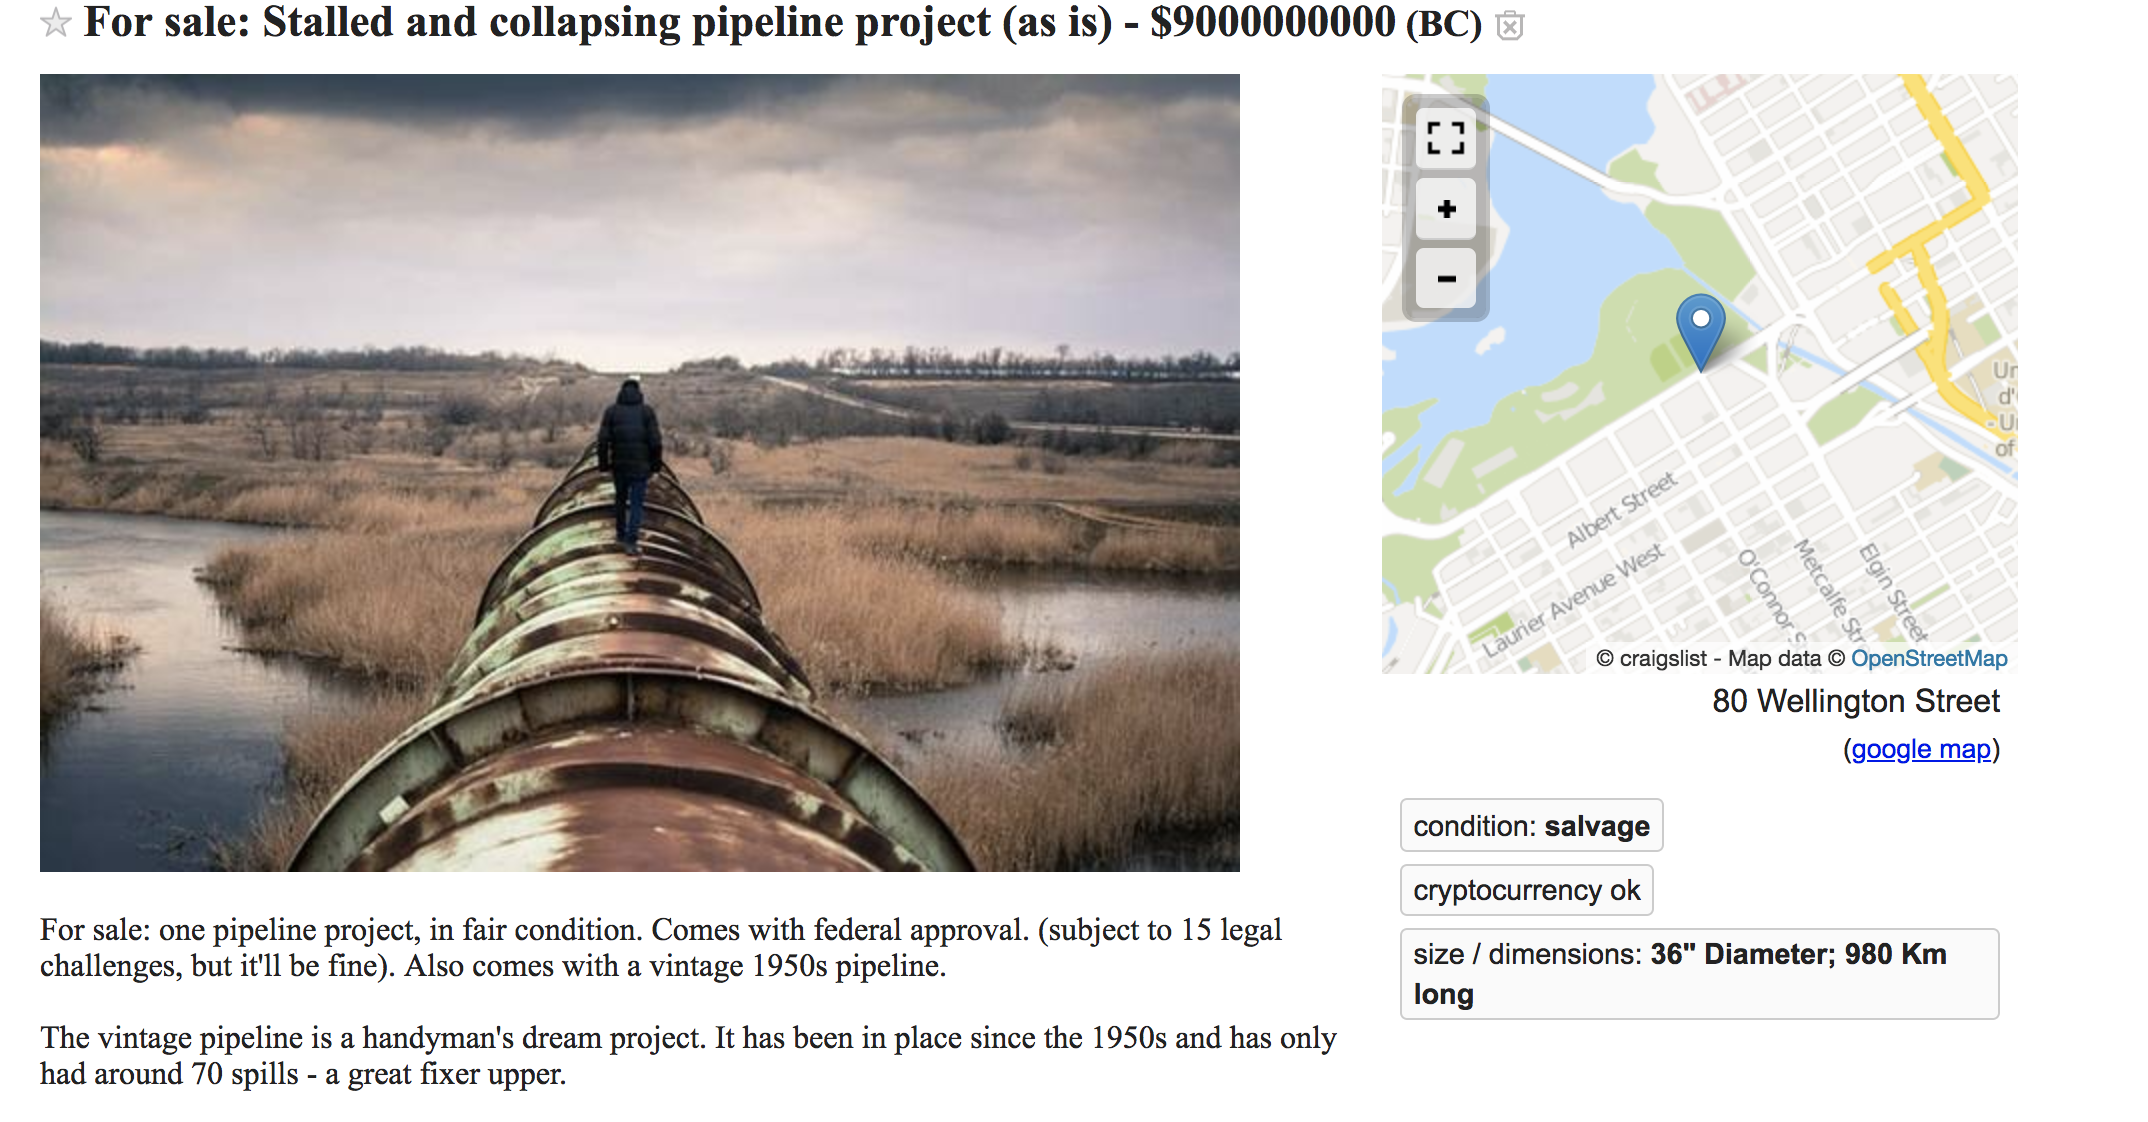 The Kinder Morgan Pipeline is listed for 'sale' on Craigslist for $9 billion